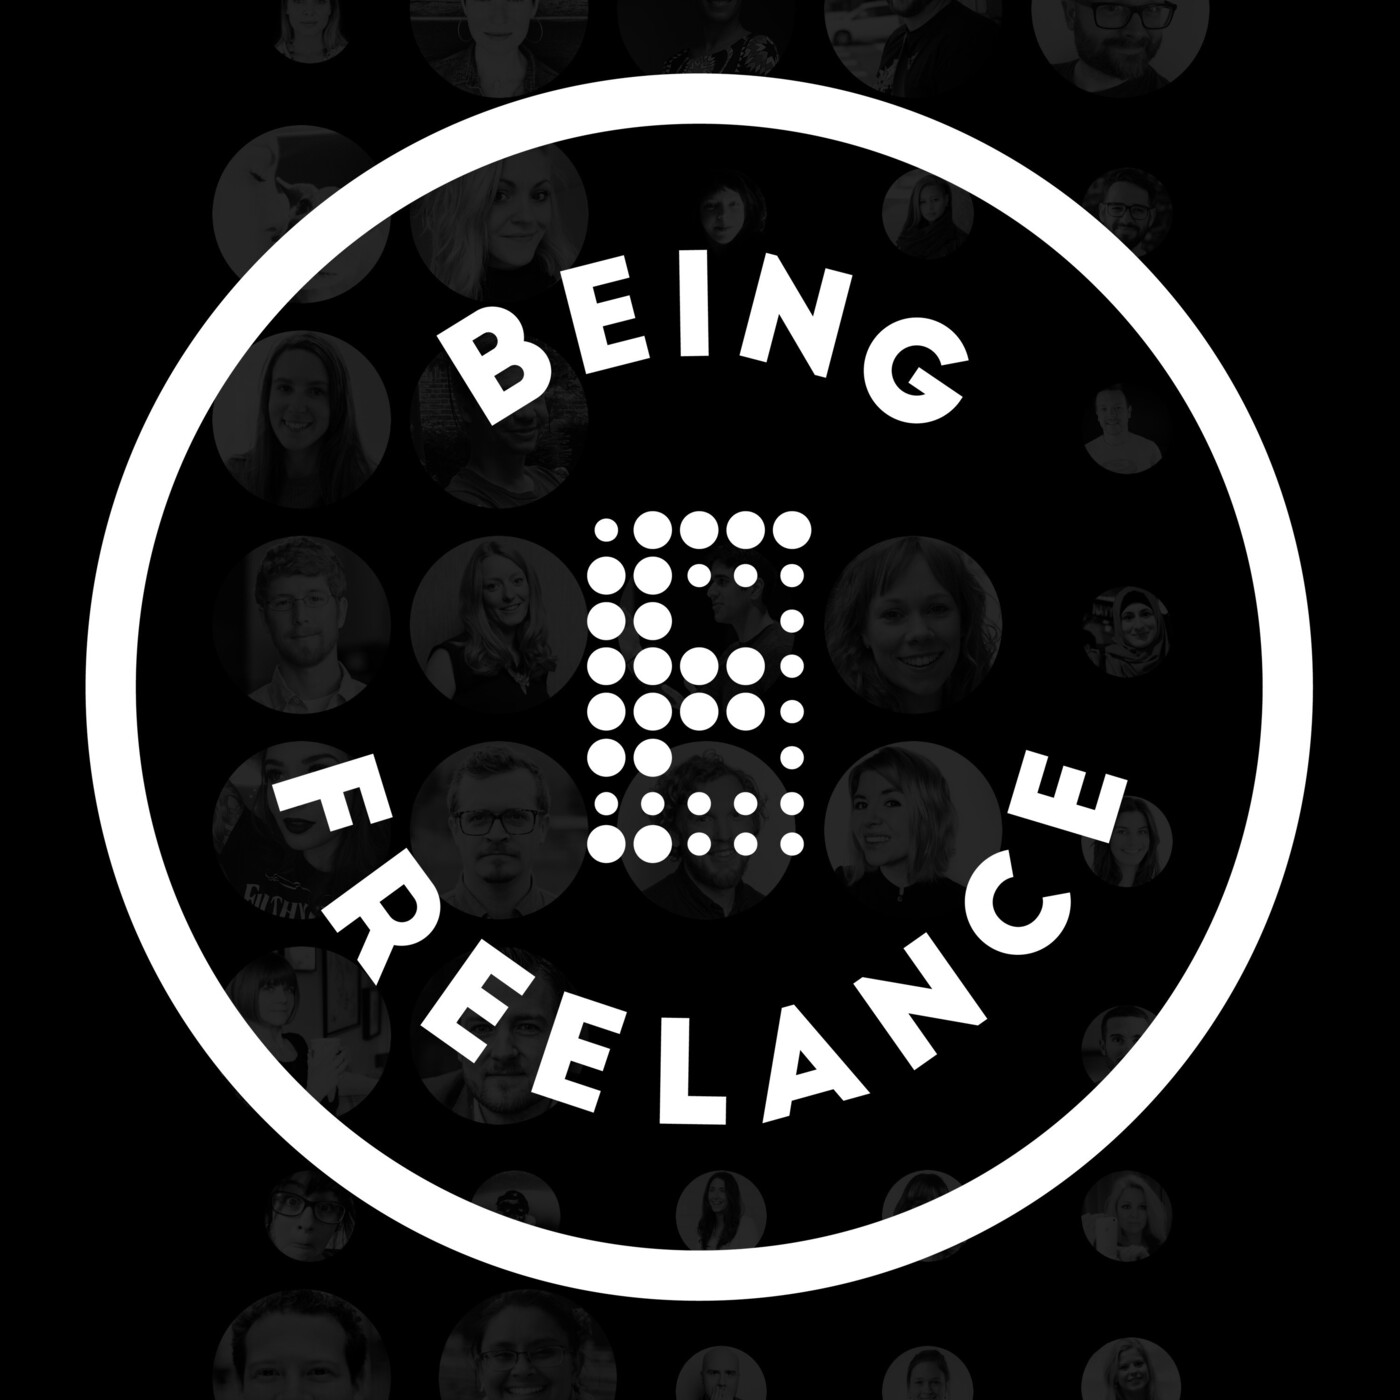 Web Developer Barry McGee - Paid Twitter Promotion Can Work For Freelancers